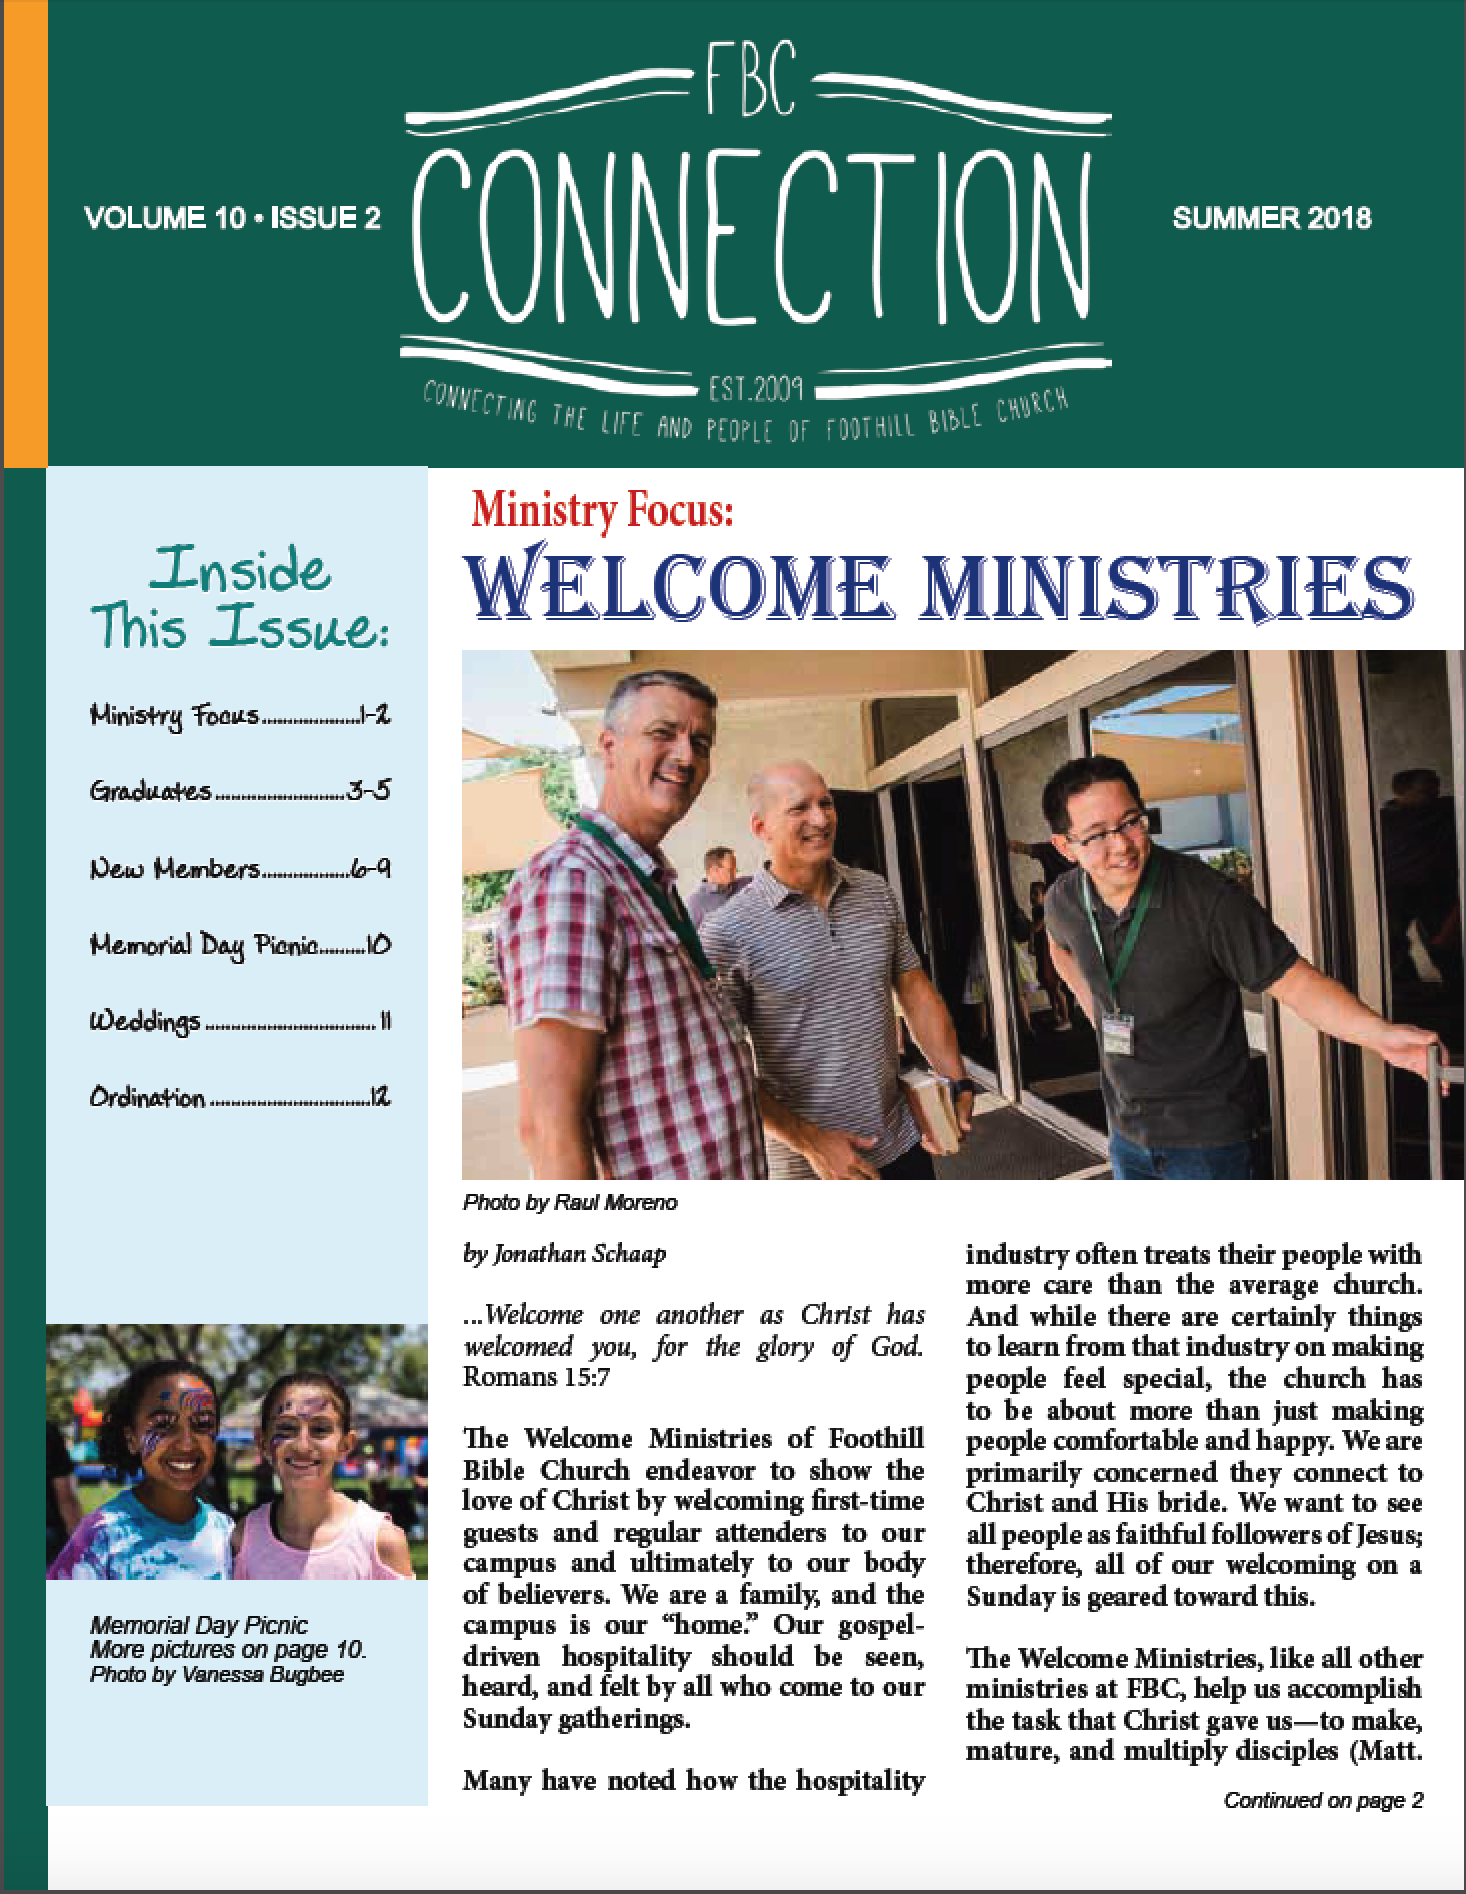 FBC Connection Summer 2018 p1